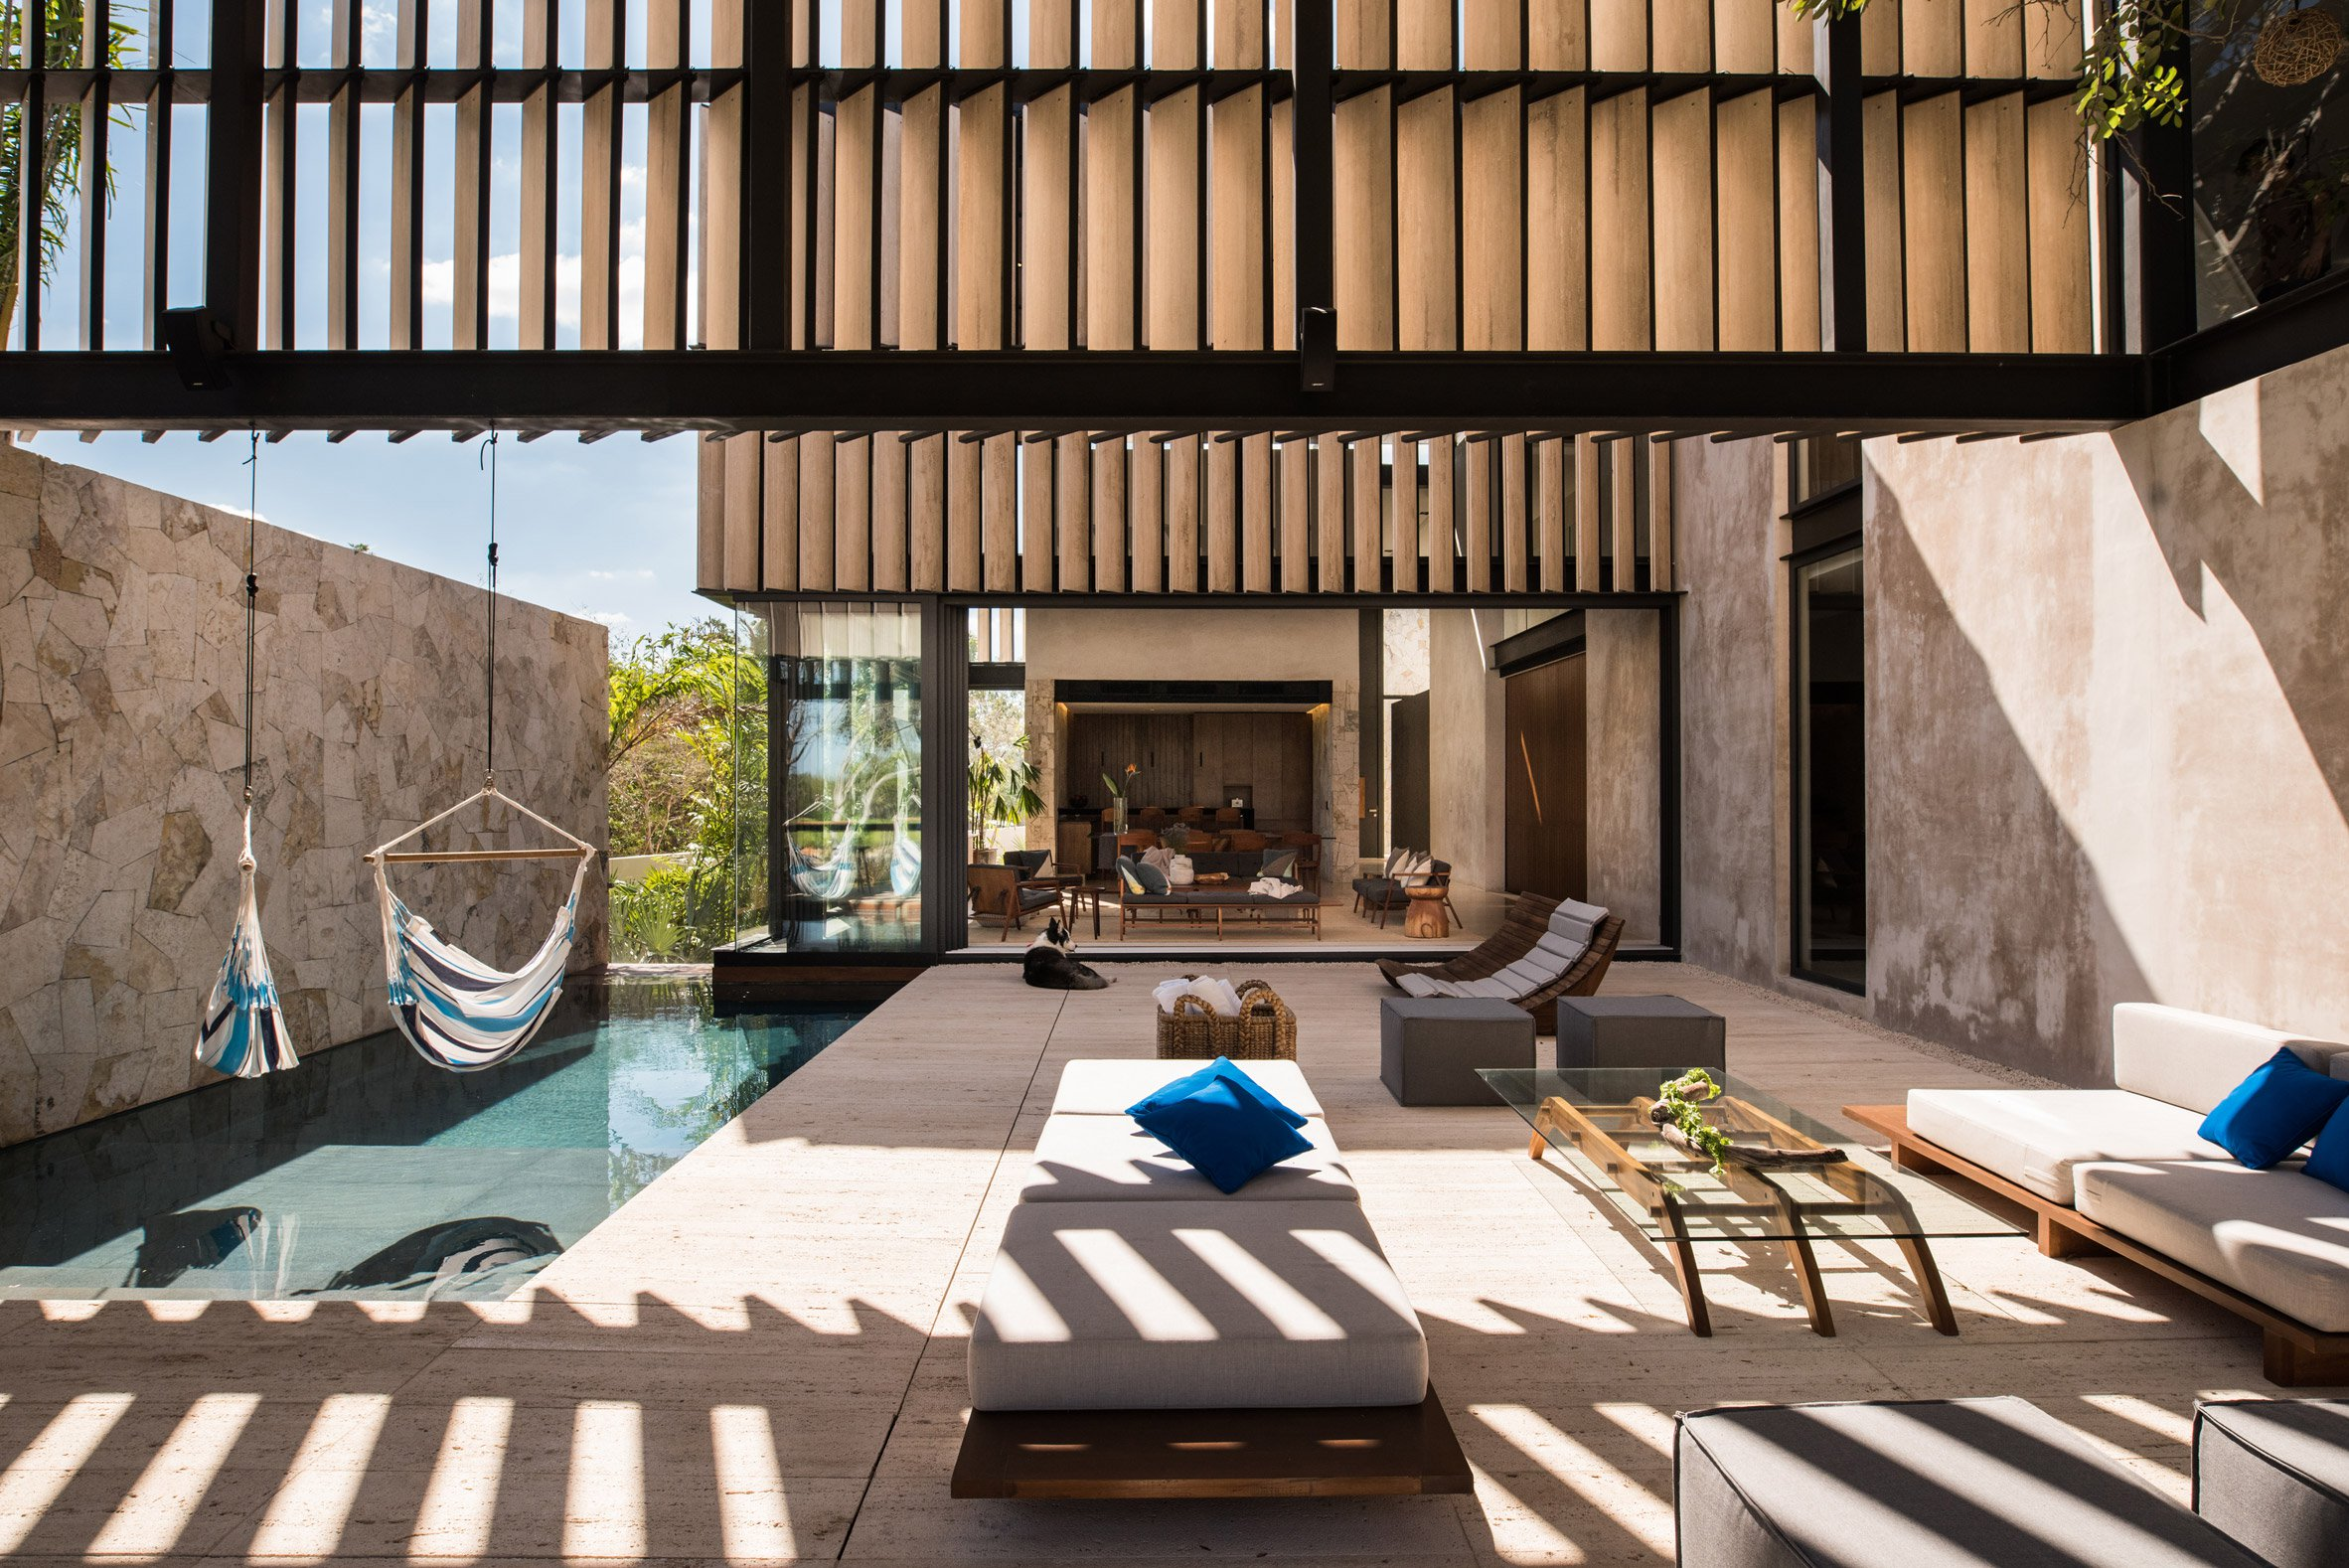 casa chaaltun tescala architects architecture residential houses mexico dezeen 2364 col 0 - Wonderful modern house with slatted marble walls in Mexico